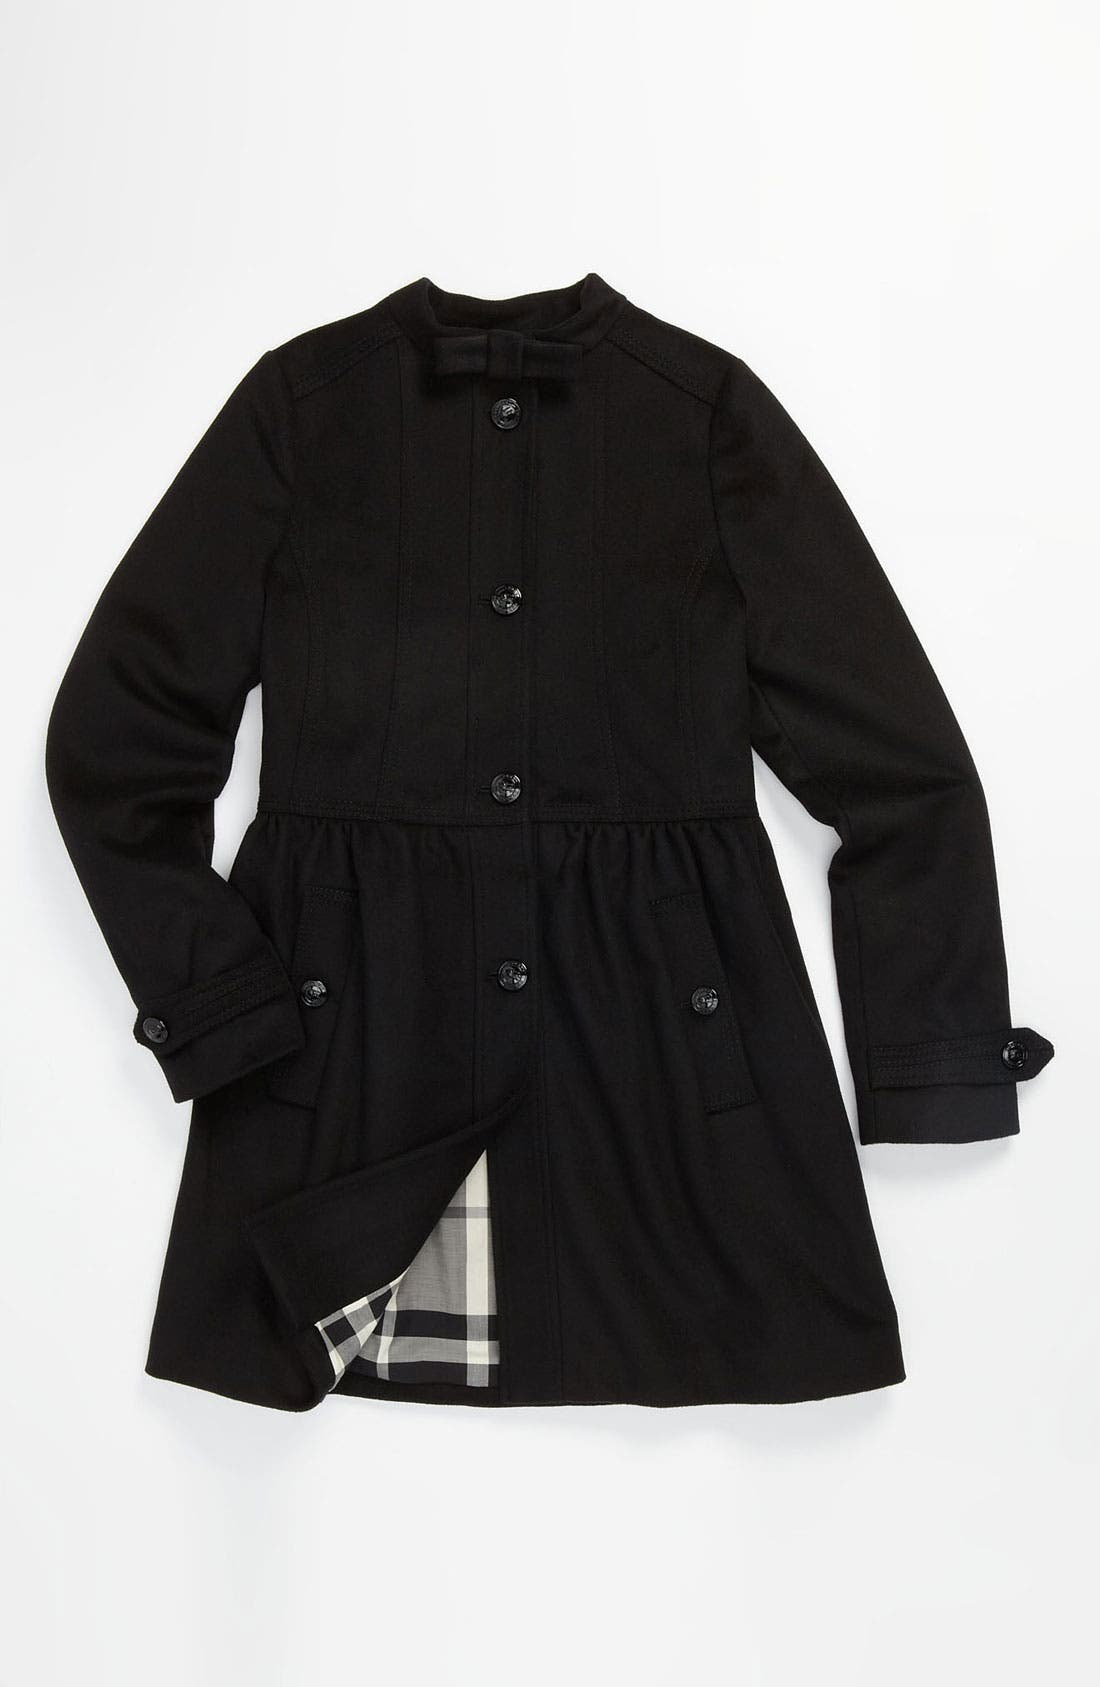 Alternate Image 1 Selected - Burberry Wool Blend Peacoat (Little Girls & Big Girls)